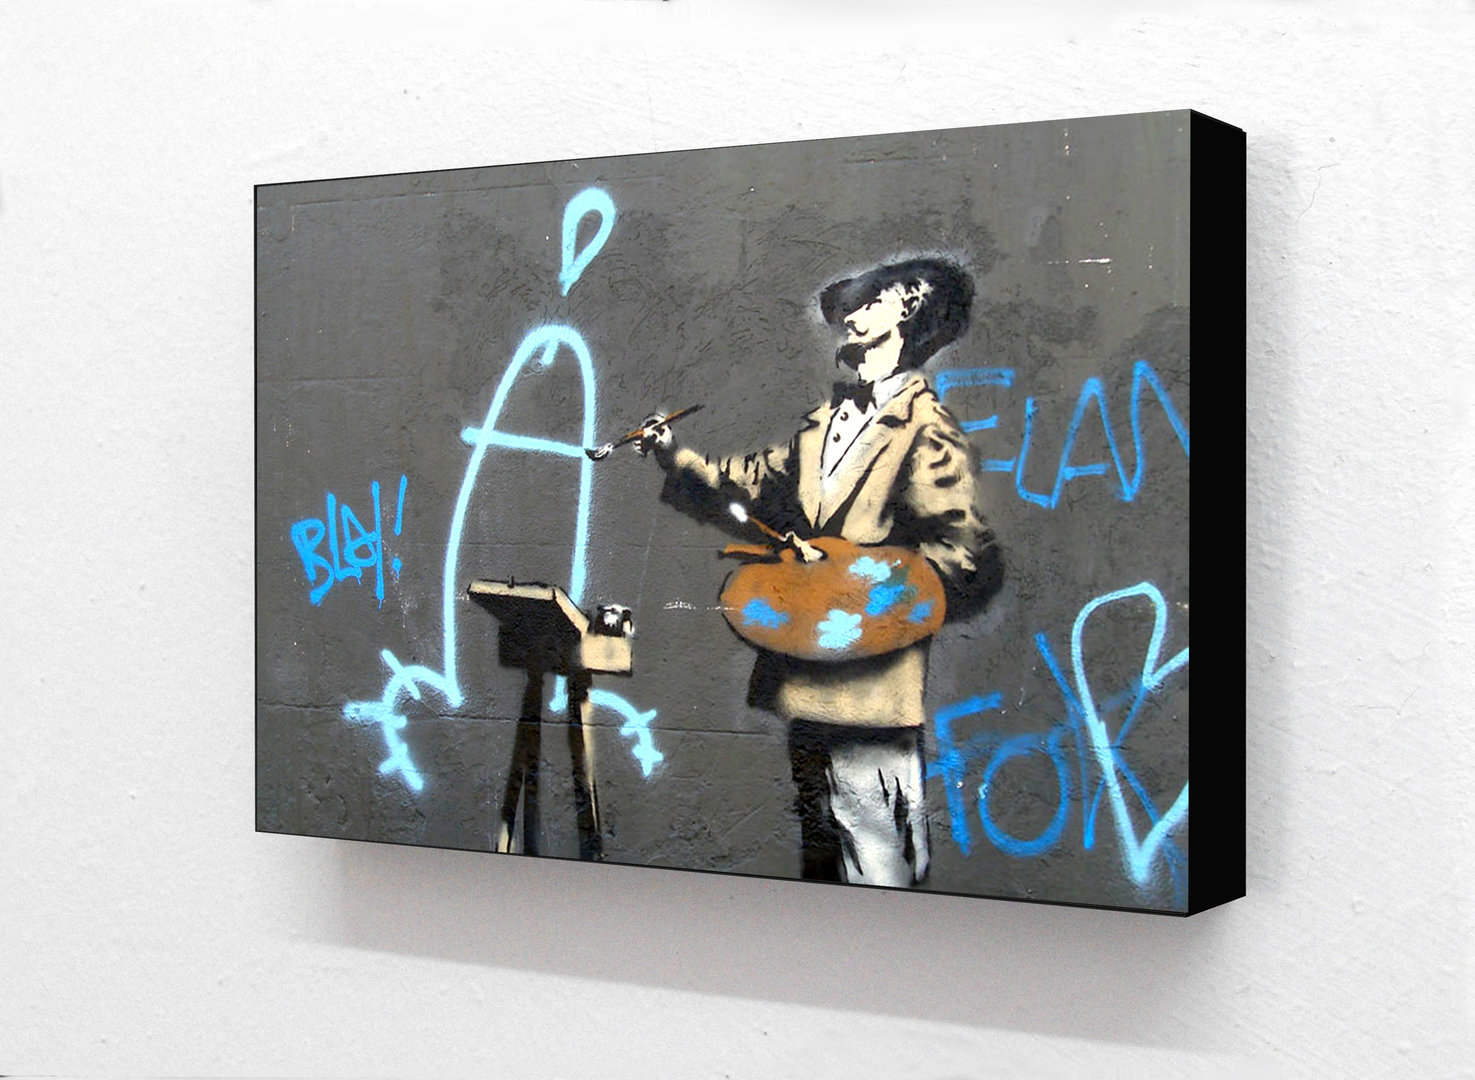 Banksy - Dali Dick Painter Horizontal Block mounted Print